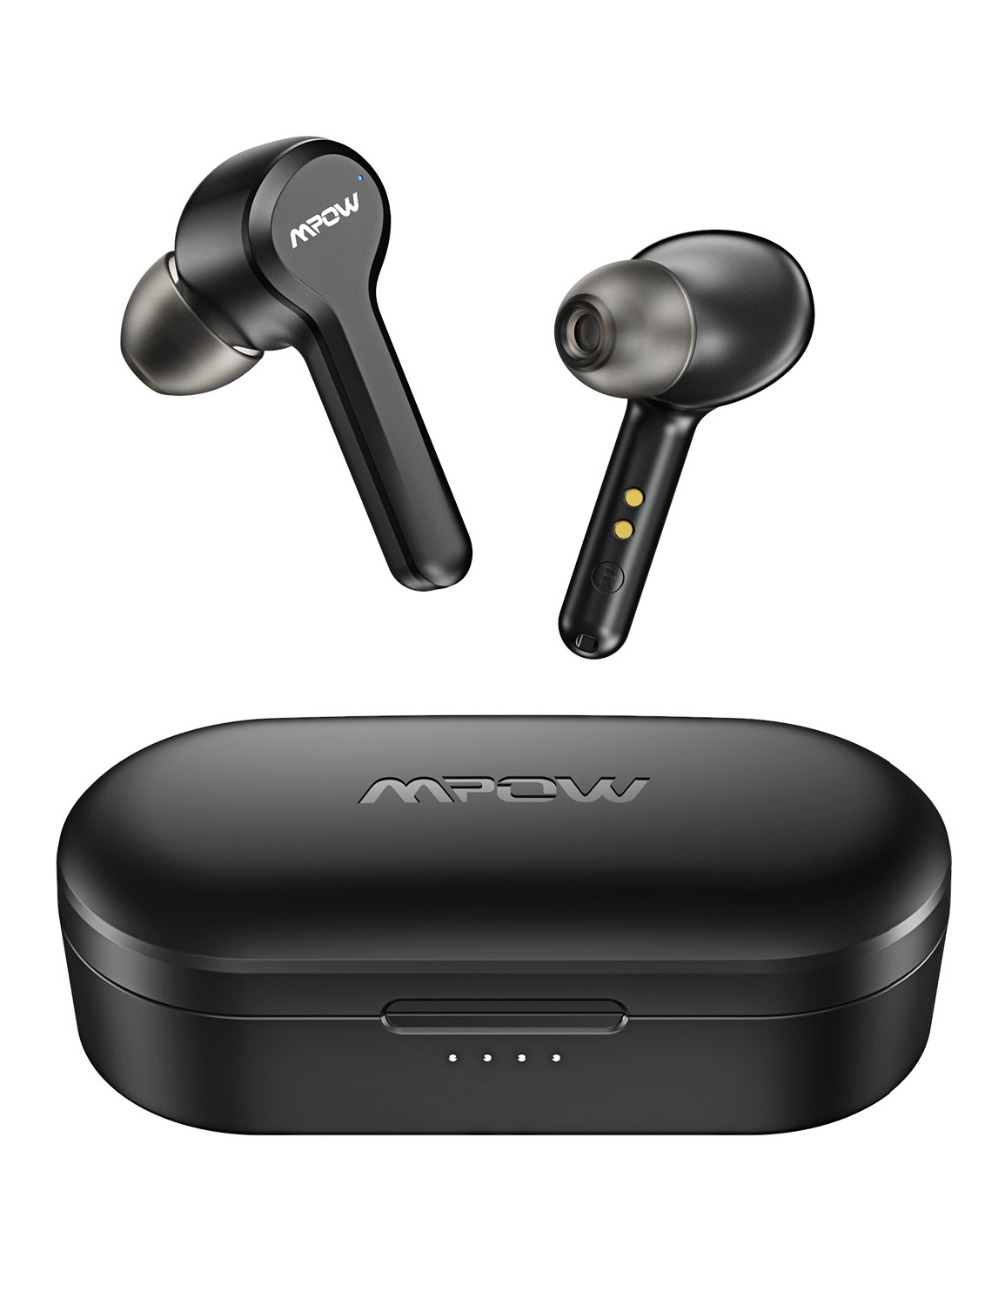 Mpow M9 TWS Earbuds True Wireless Bluetooth 5.0 Headphone IPX7 Waterproof Earphone With Charging Case 30H Playtime For iPhone 11 PK SoundPEATS TWS Earbuds (11)